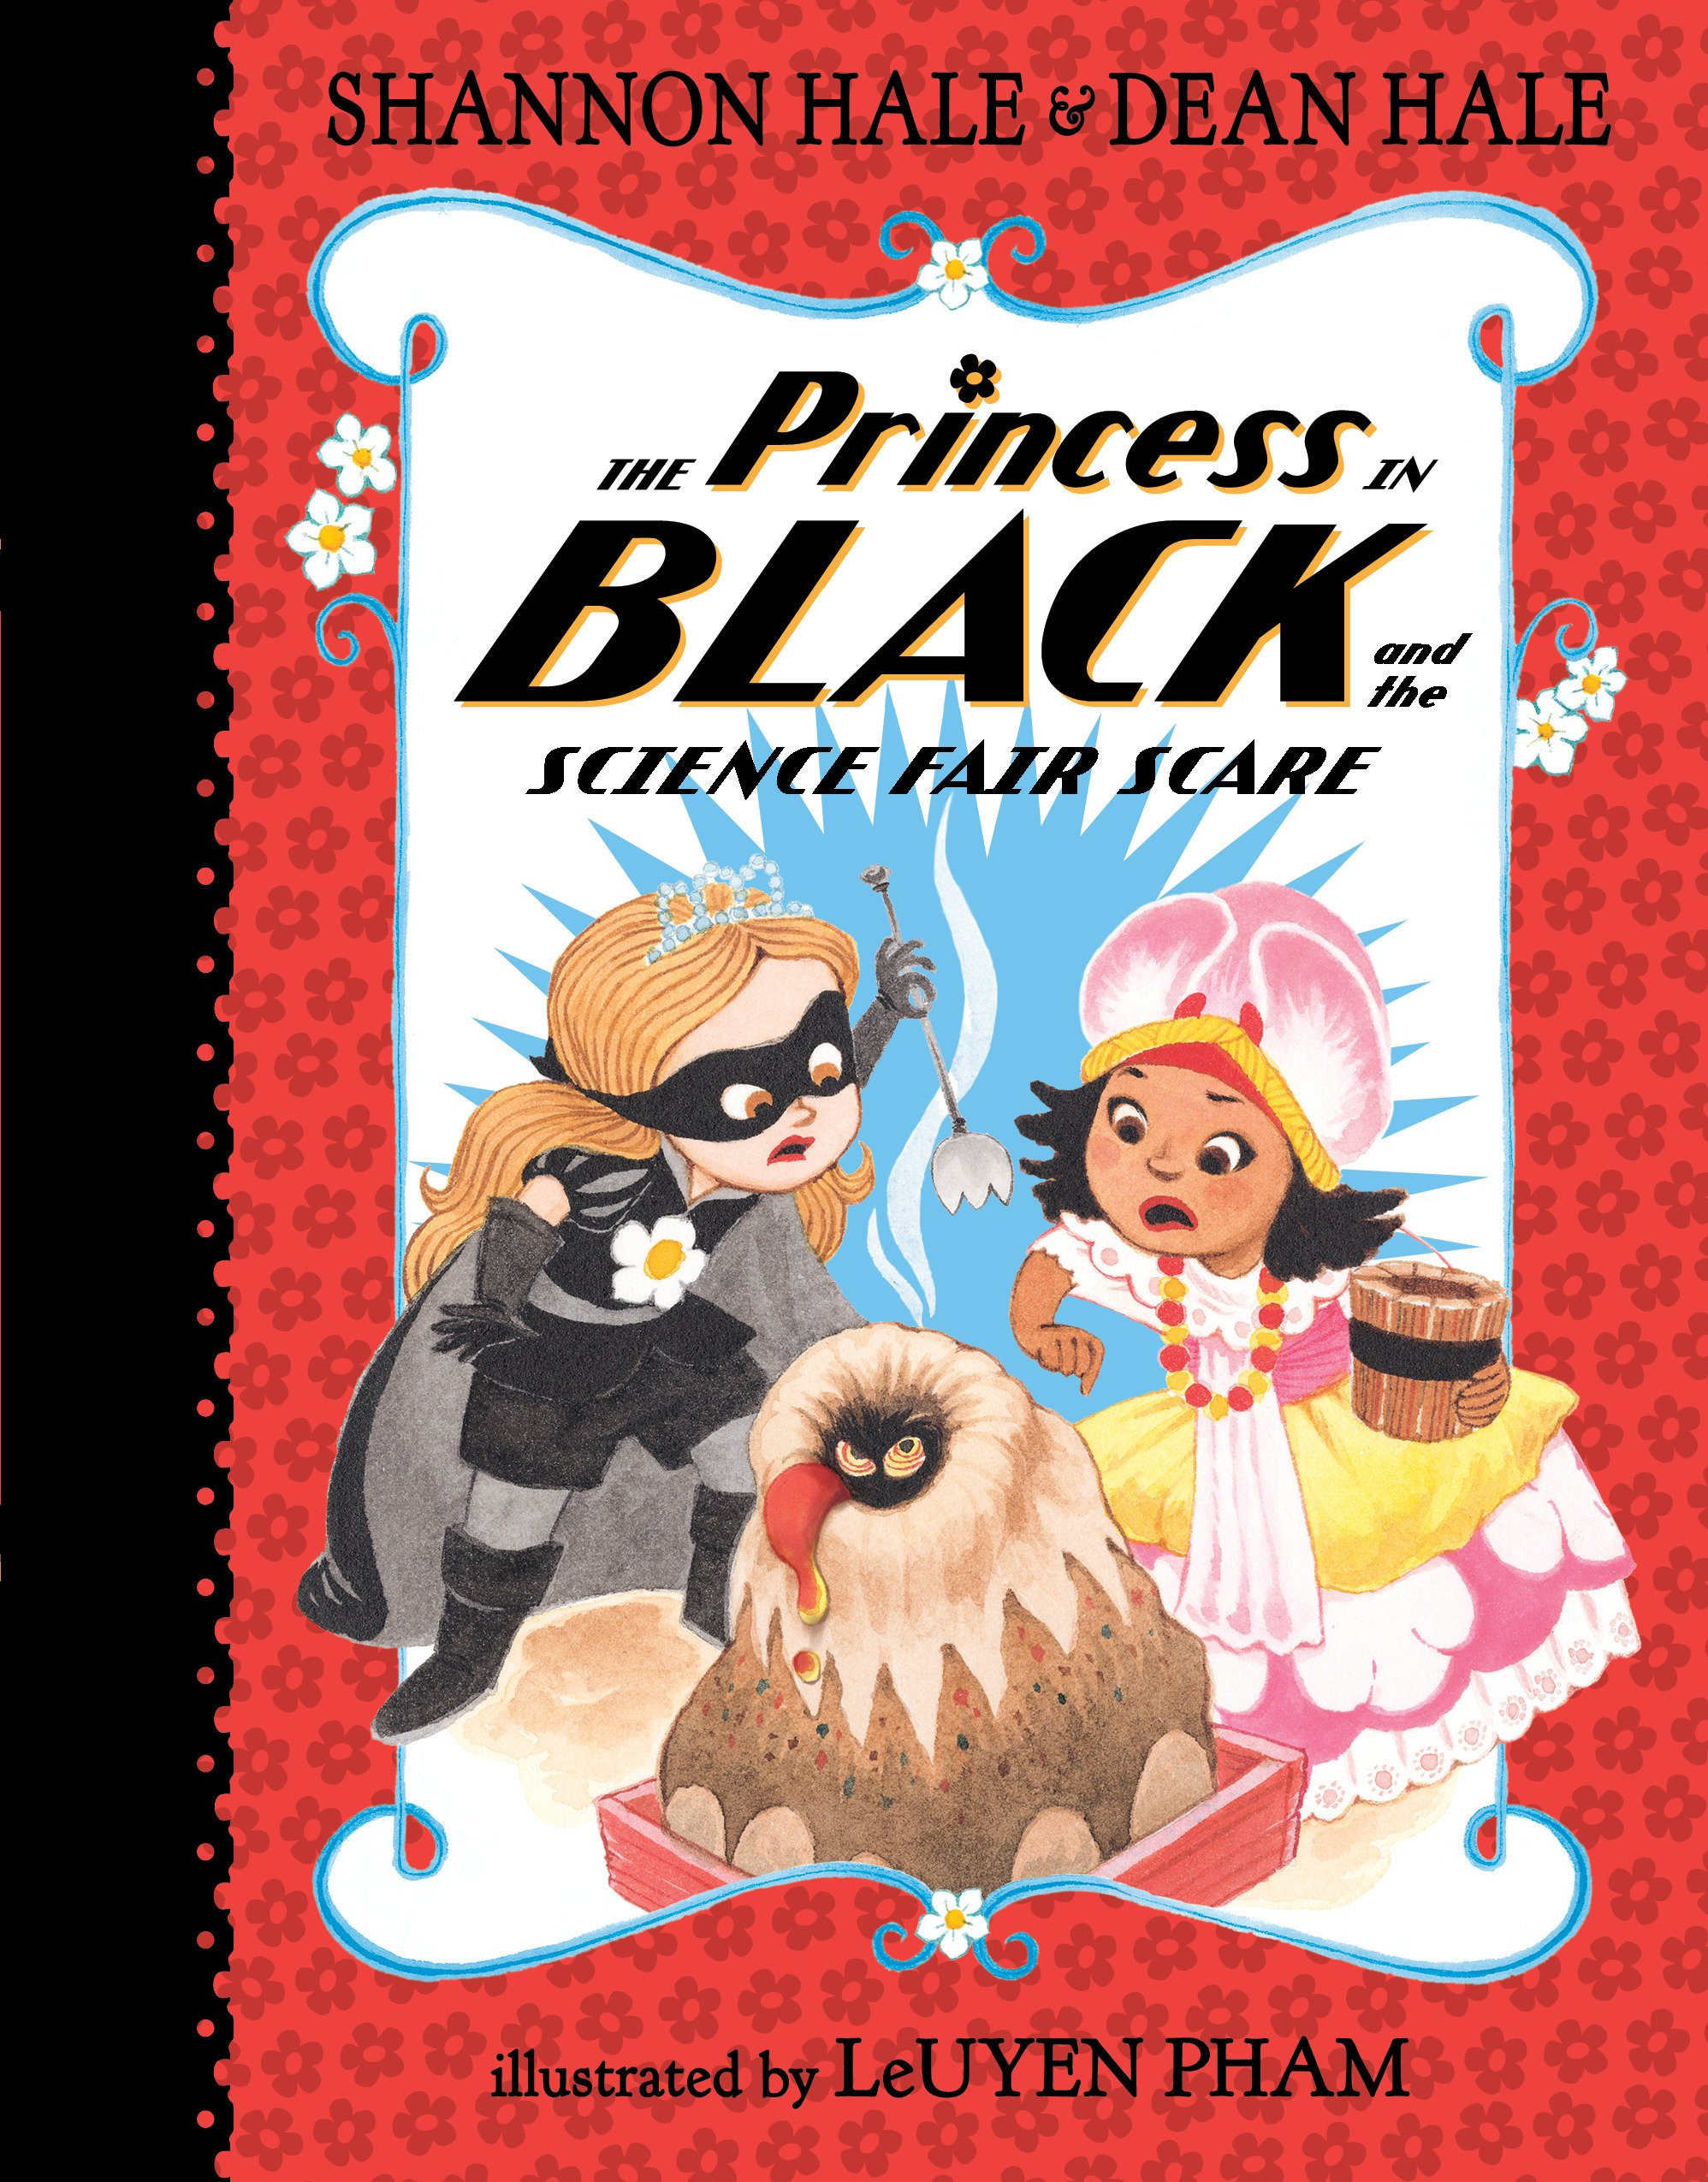 The Princess in Black and the Science Fair Scare by Candlewick (Image #1)